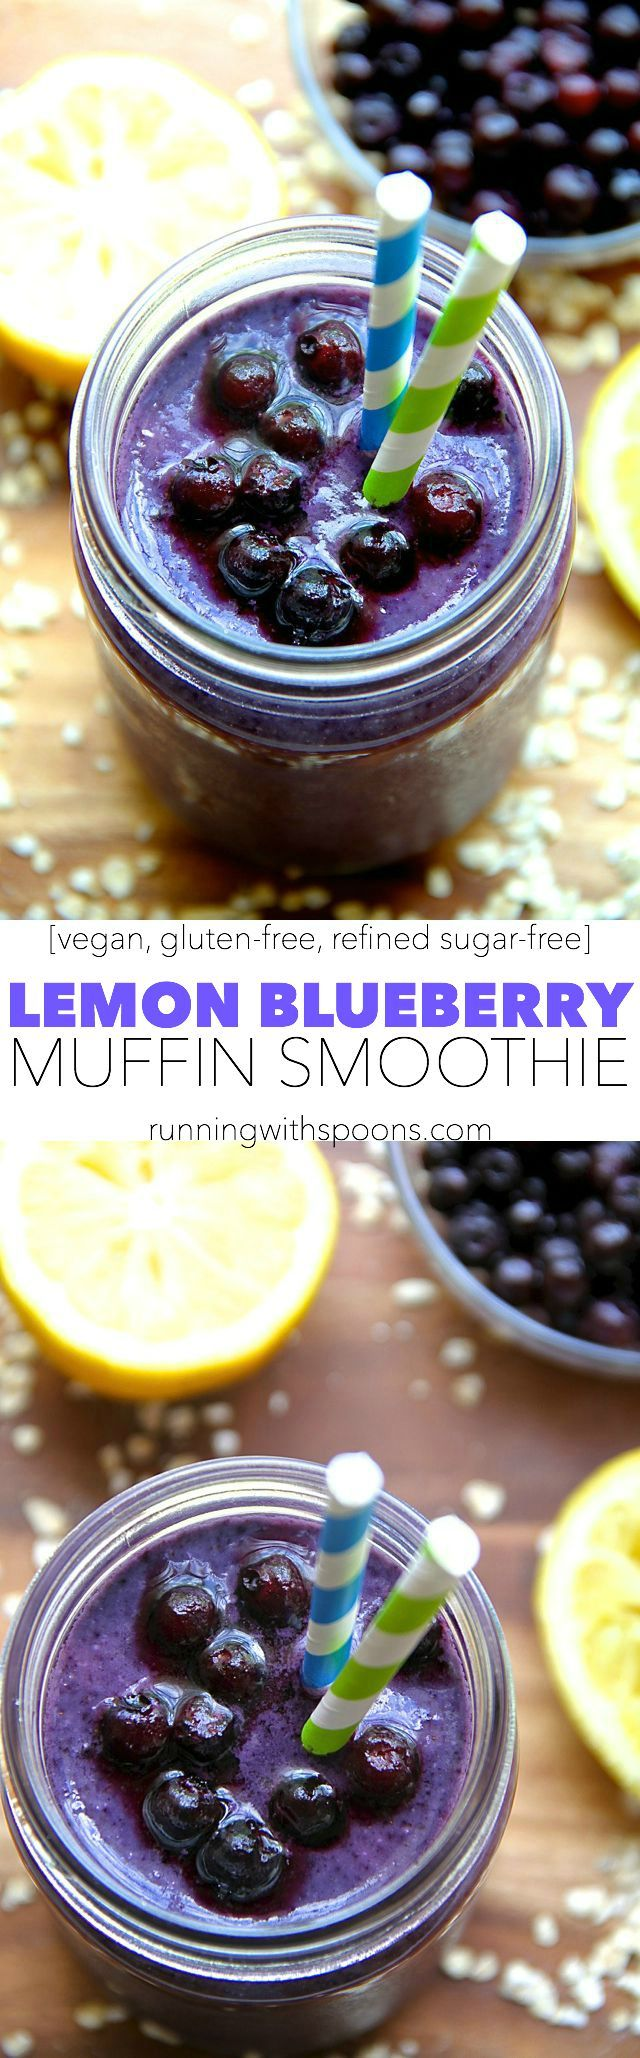 Lemon Blueberry Muffin Smoothie -- cool, creamy, and comforting thanks to the addition of a special ingredient! || runningwithspoons.com #vegan #healthy